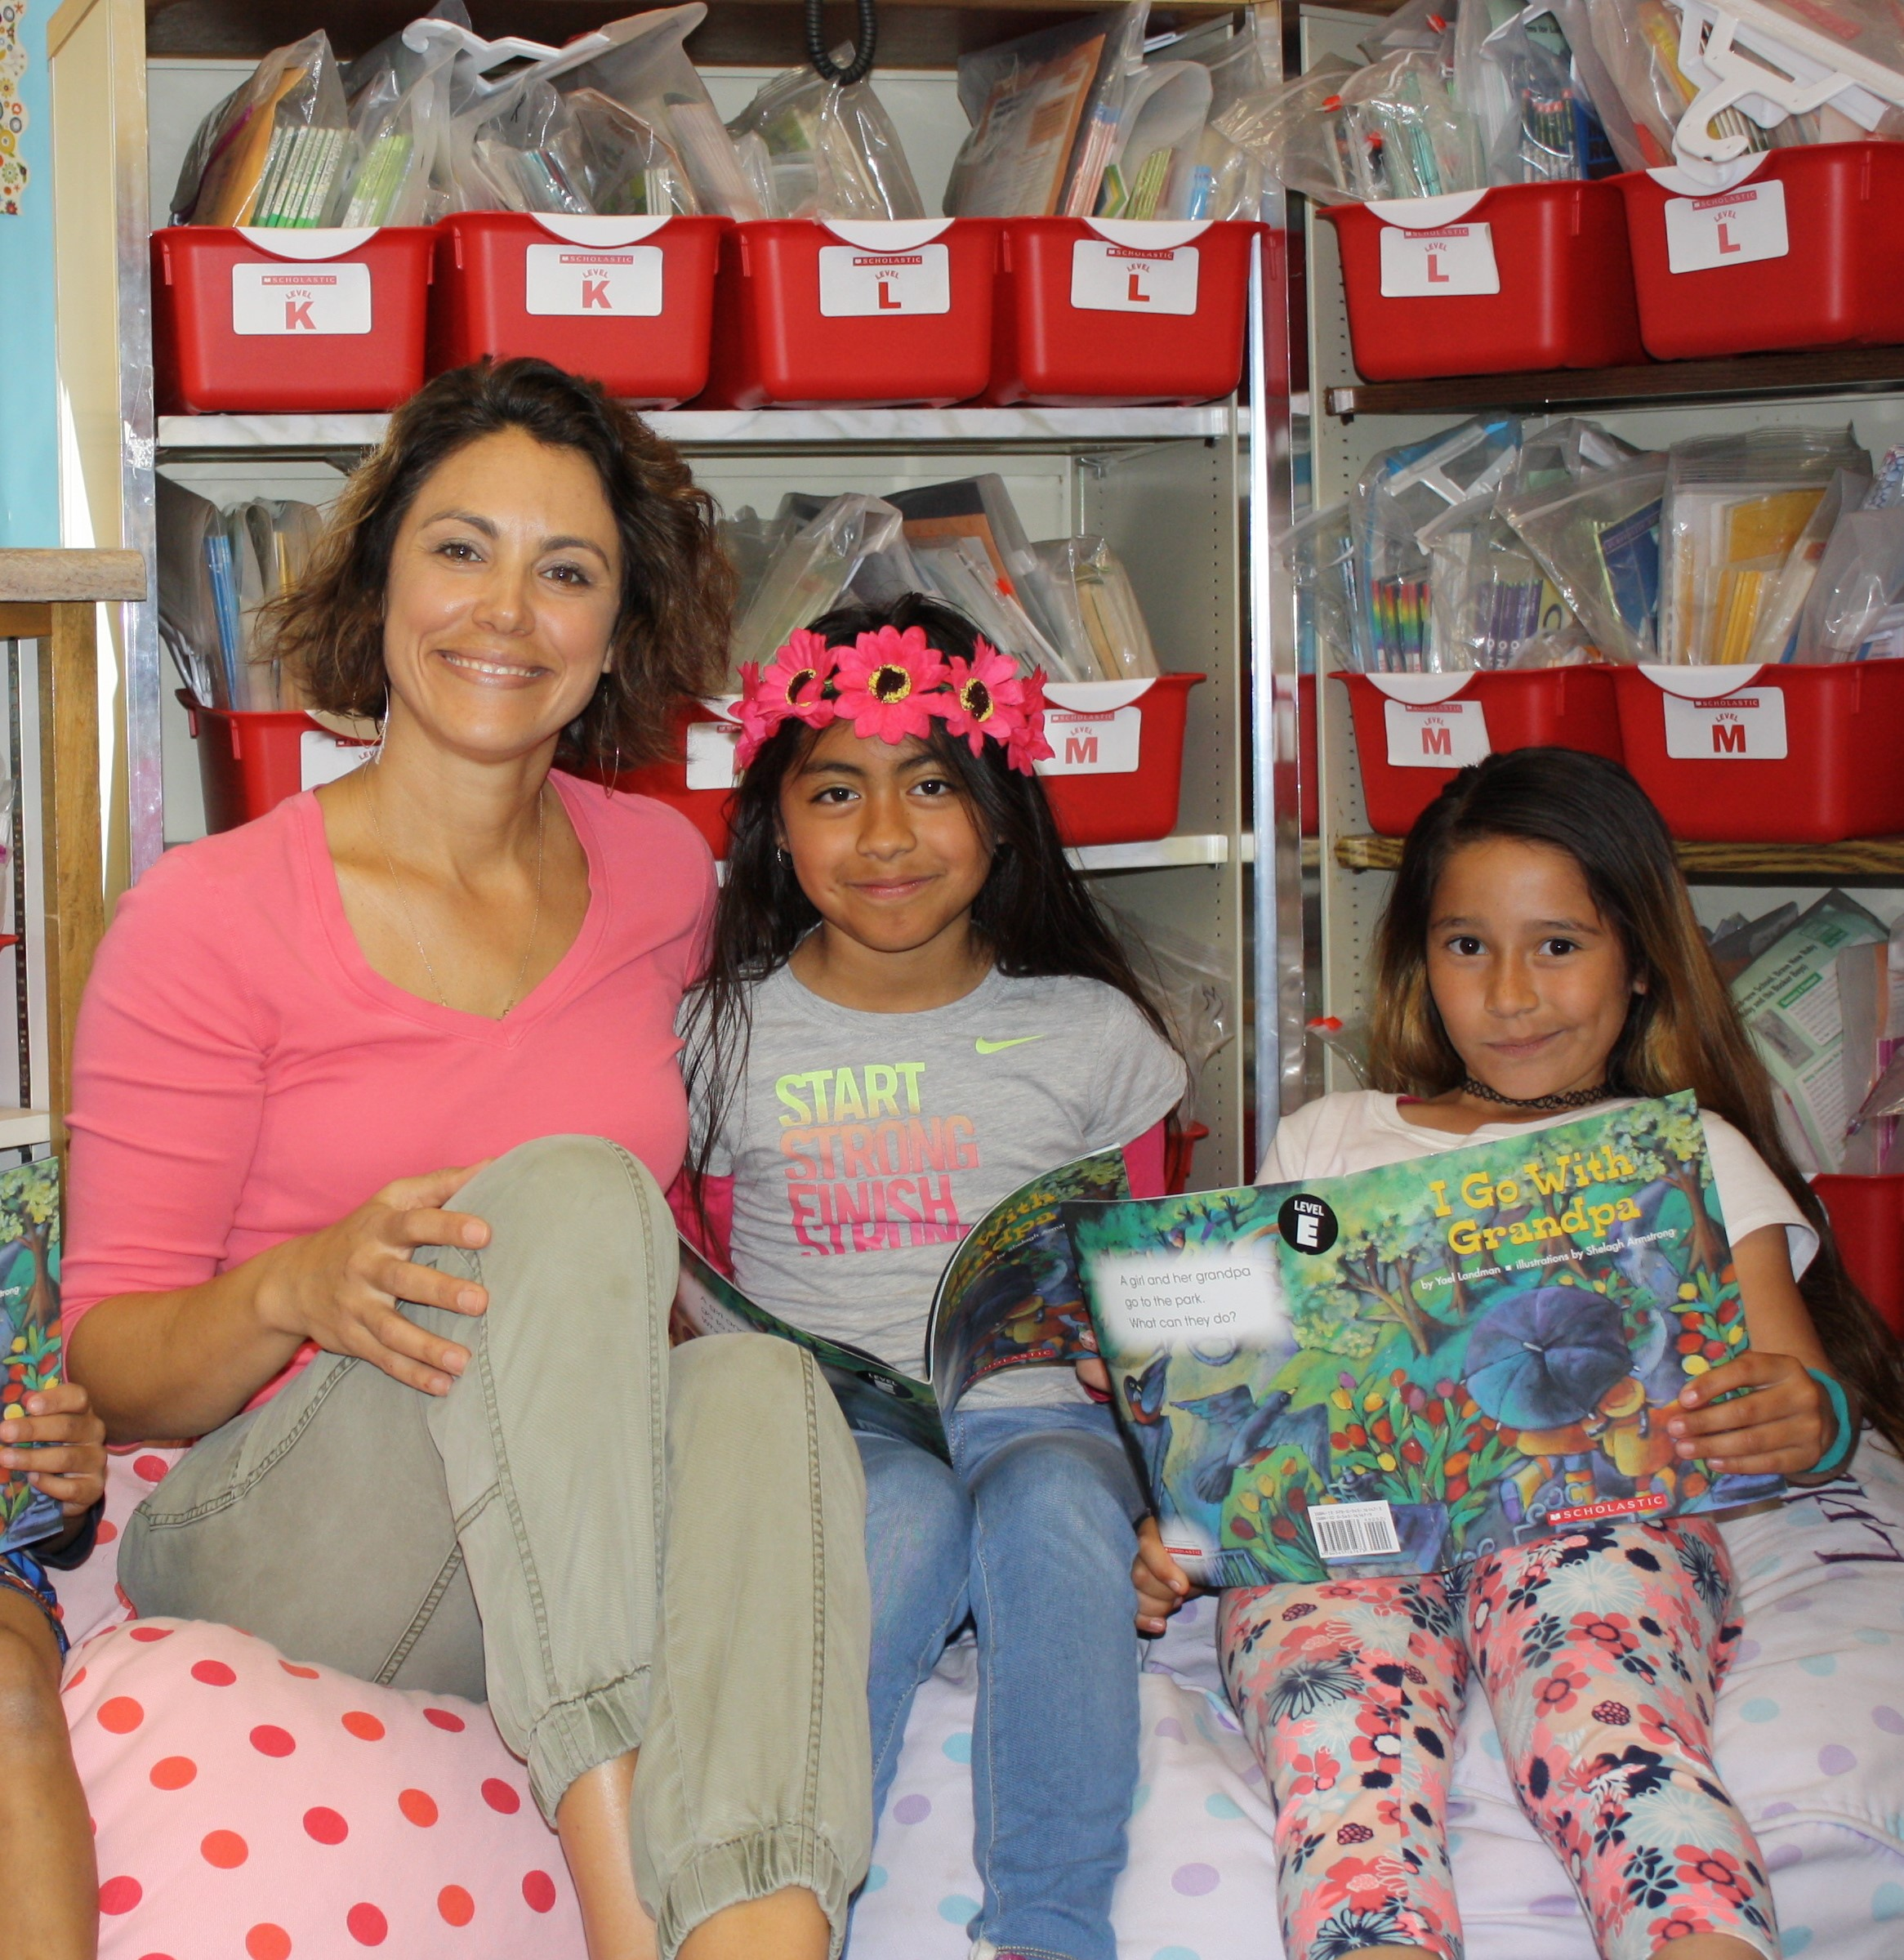 Dyslexia Intervention Program - Teacher reading with girls and flowers